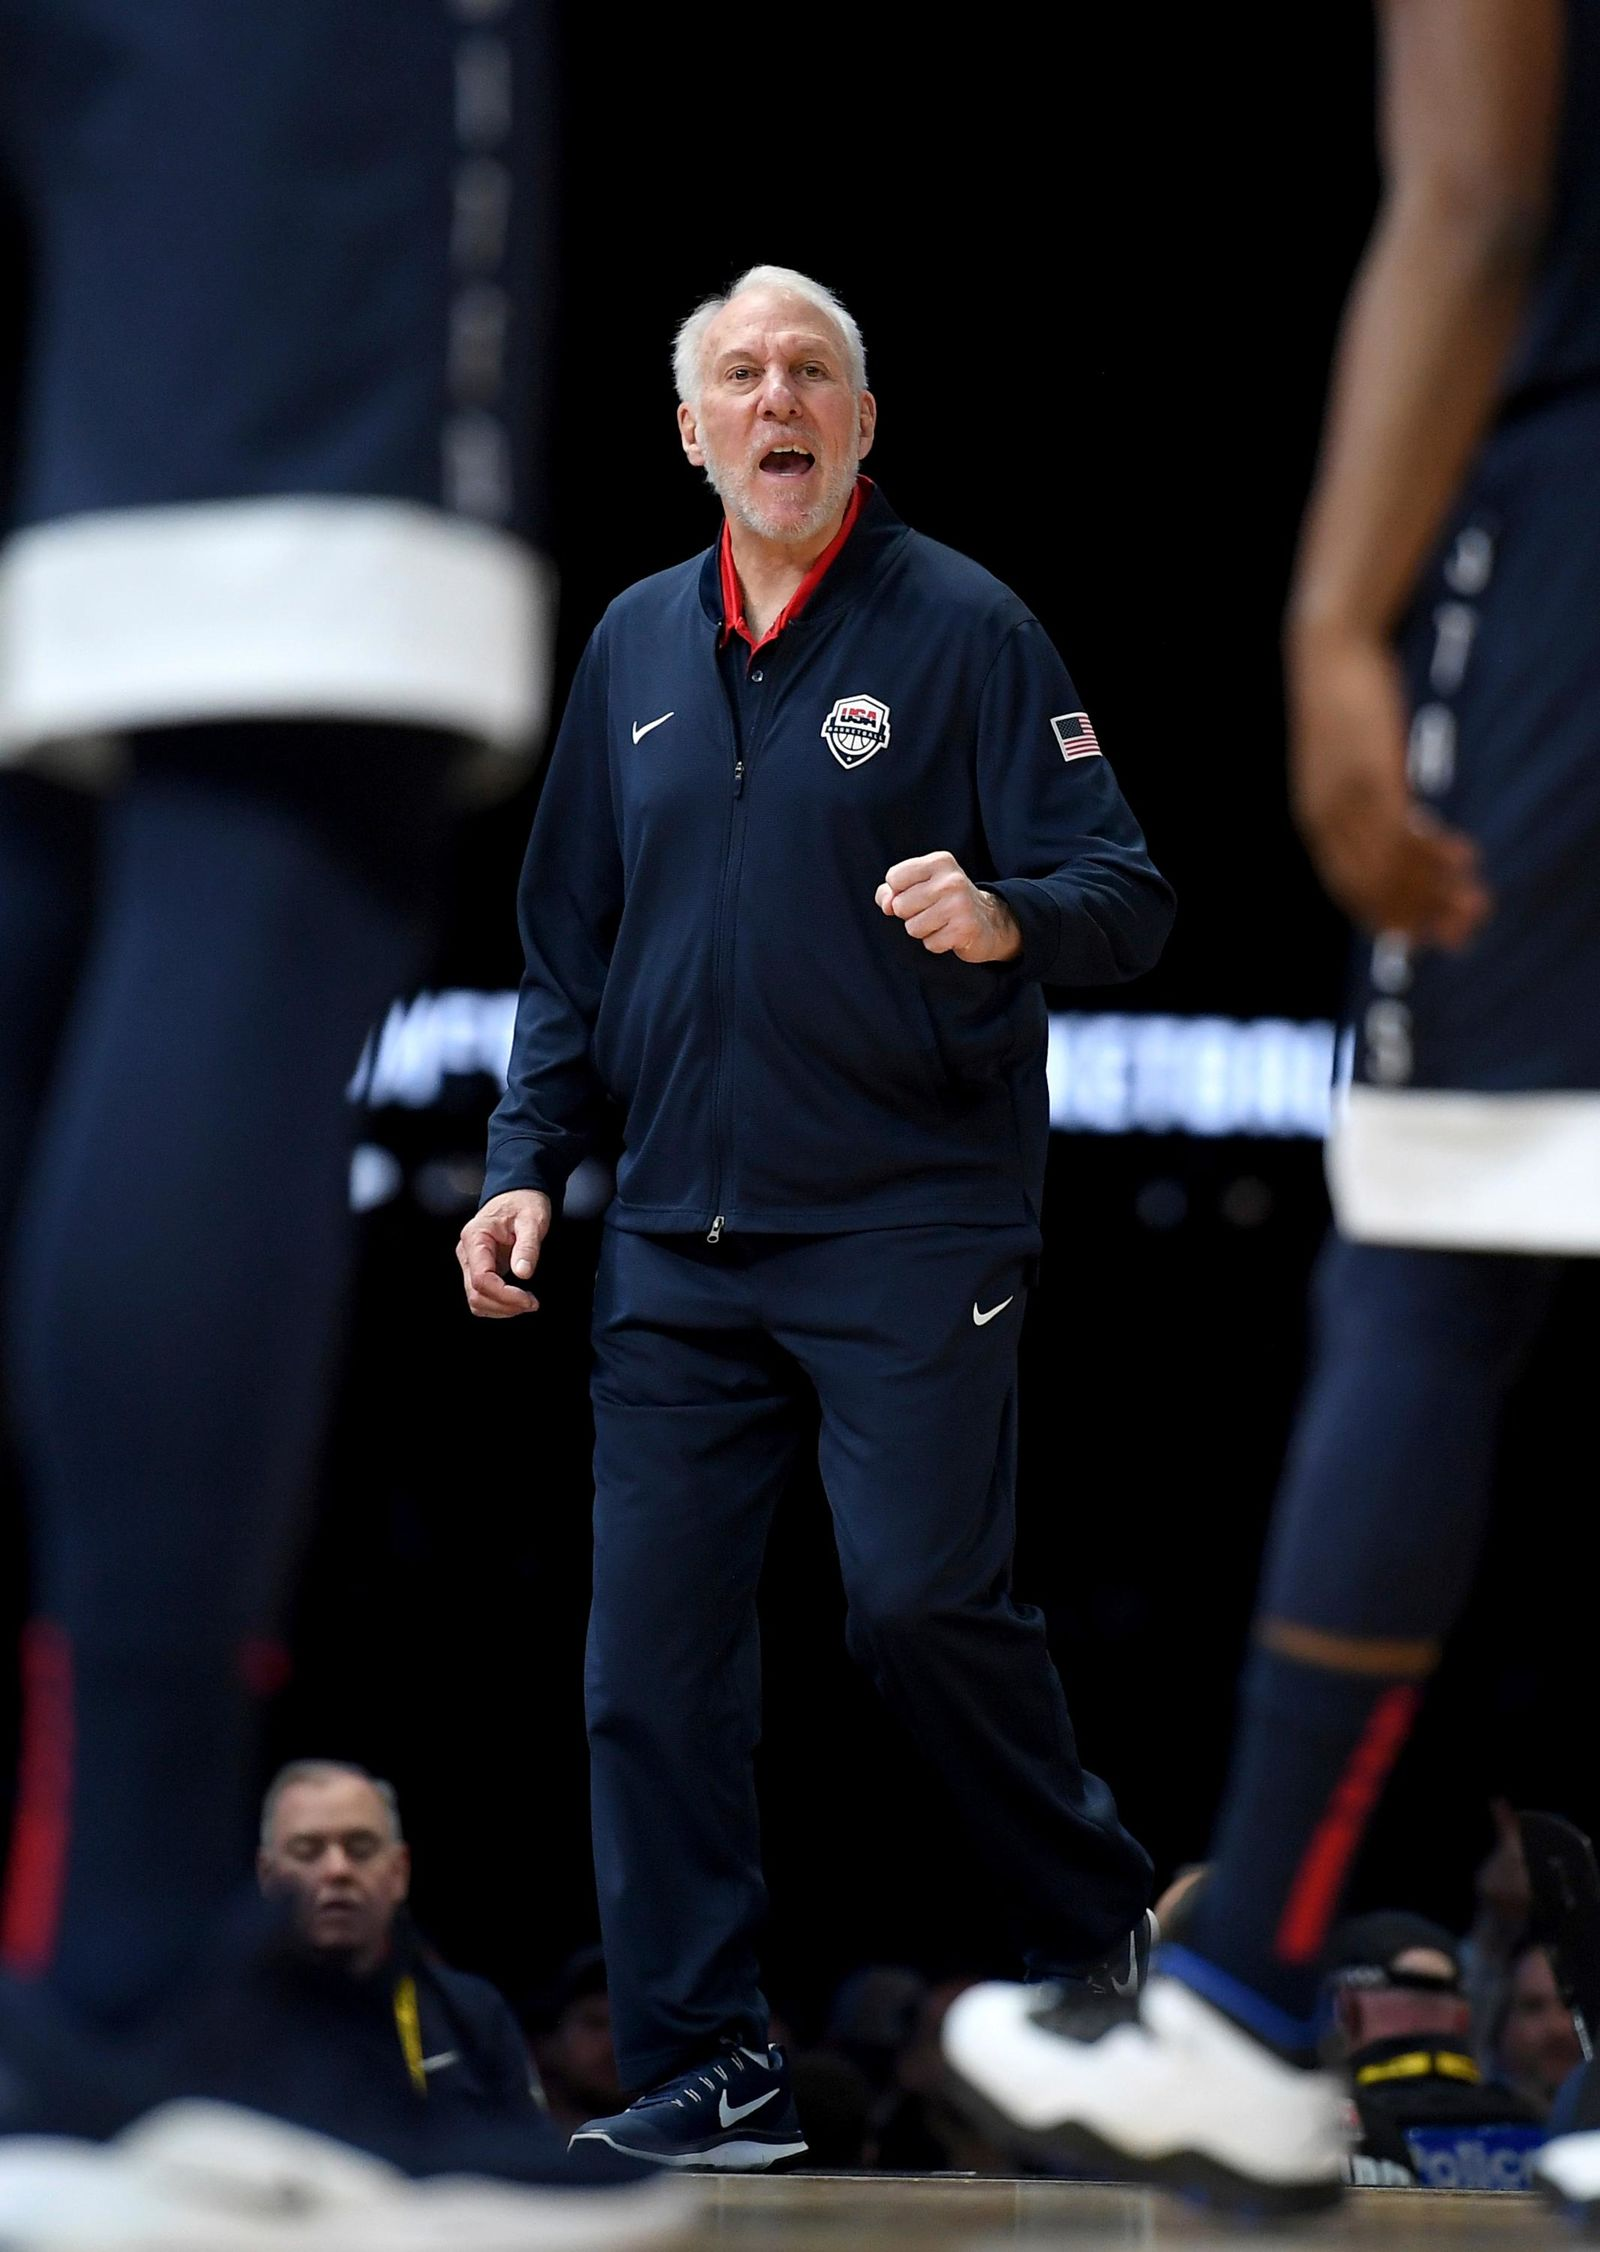 United States' head coach Gregg Popovich gestures during their exhibition basketball game against Australia in Melbourne, Saturday, Aug. 24, 2019. (AP Photo/Andy Brownbill)